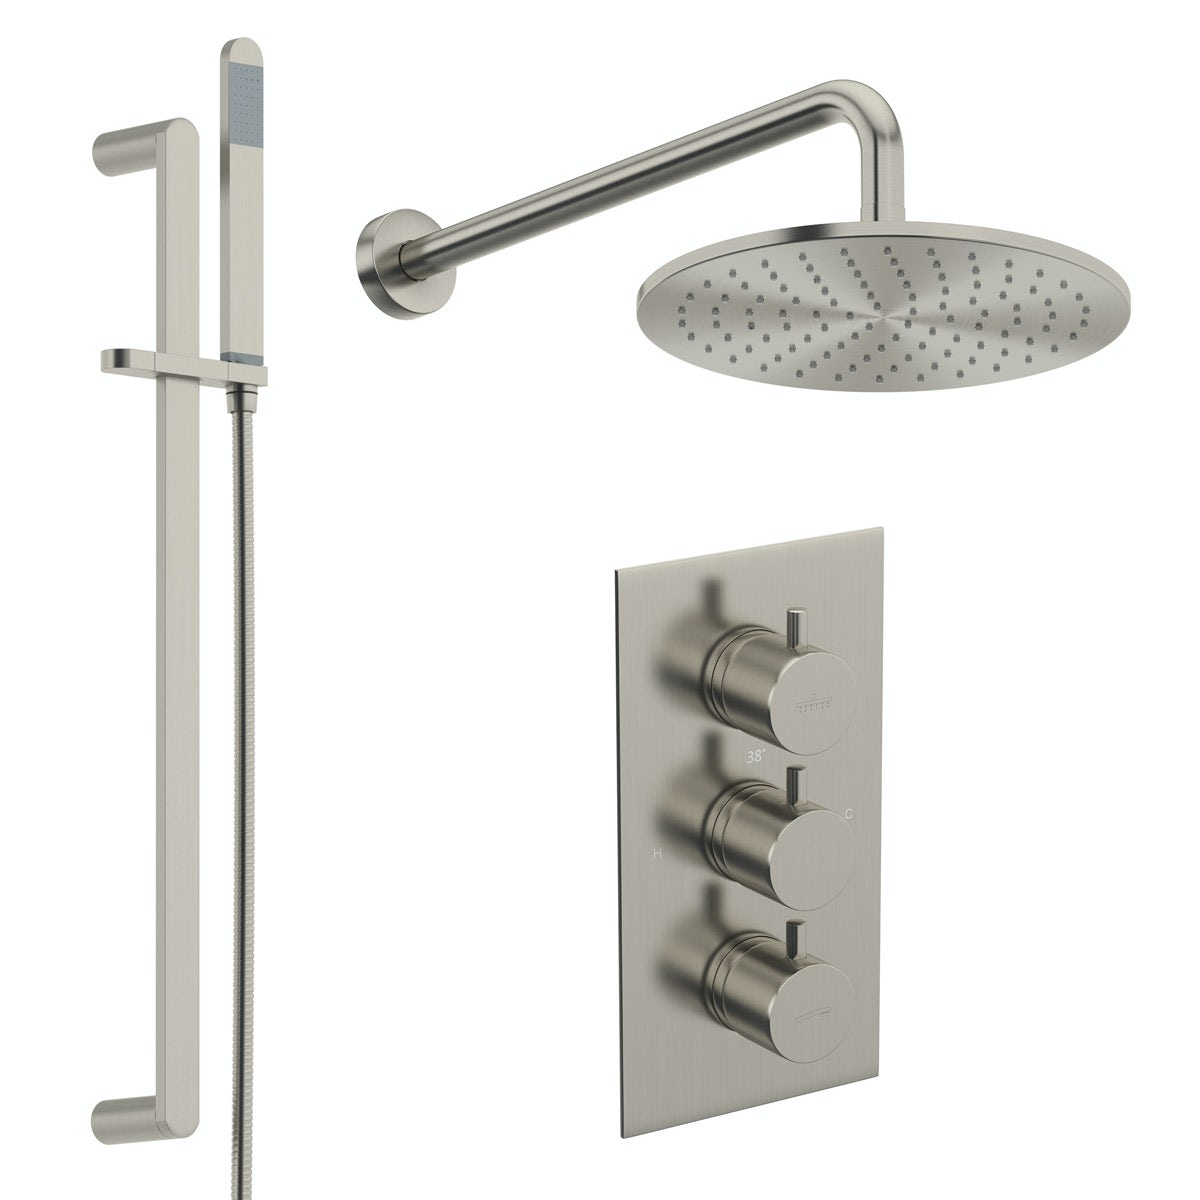 Mode Spencer round brushed nickel triple valve shower set